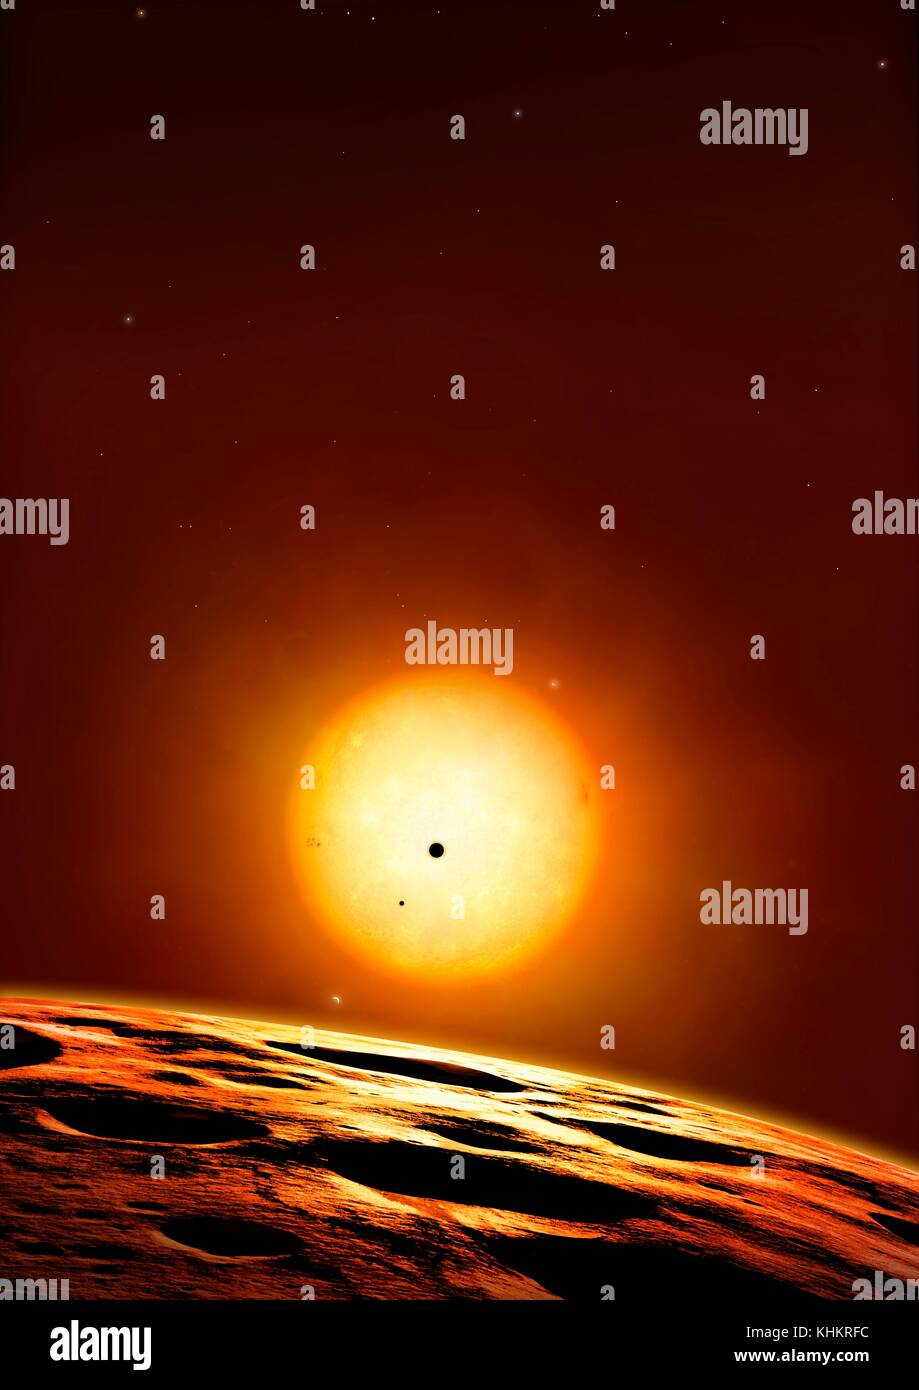 Kepler 444 system of planets,illustration.Kepler 444 is an ancient star,estimated to be about 11.2 billion years - Stock Image